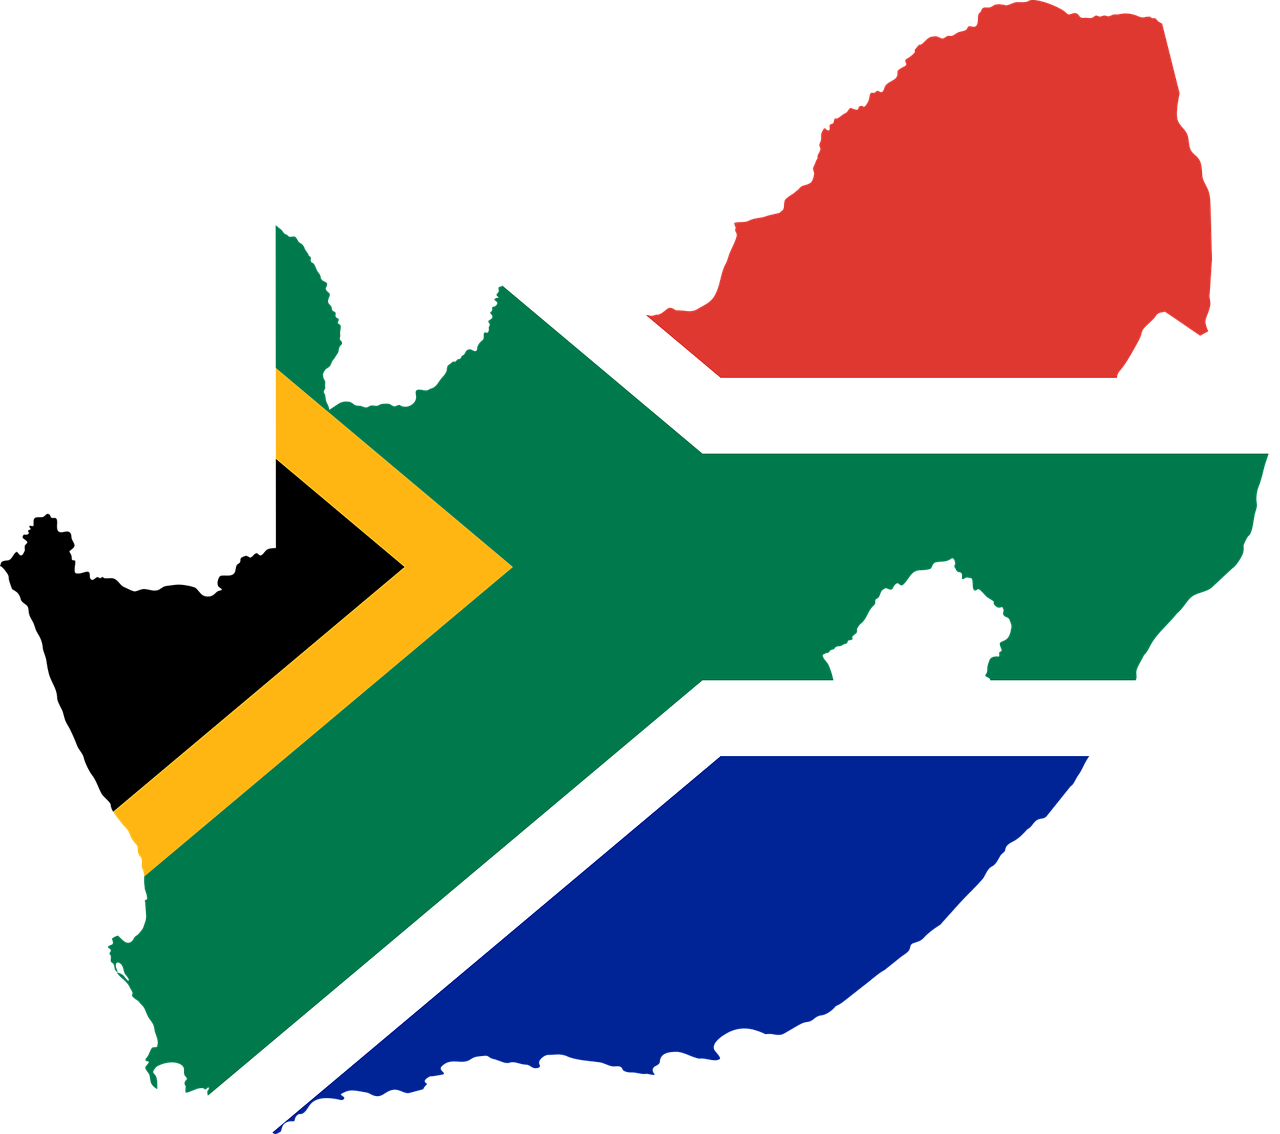 Land clipart country land. South africa s anc